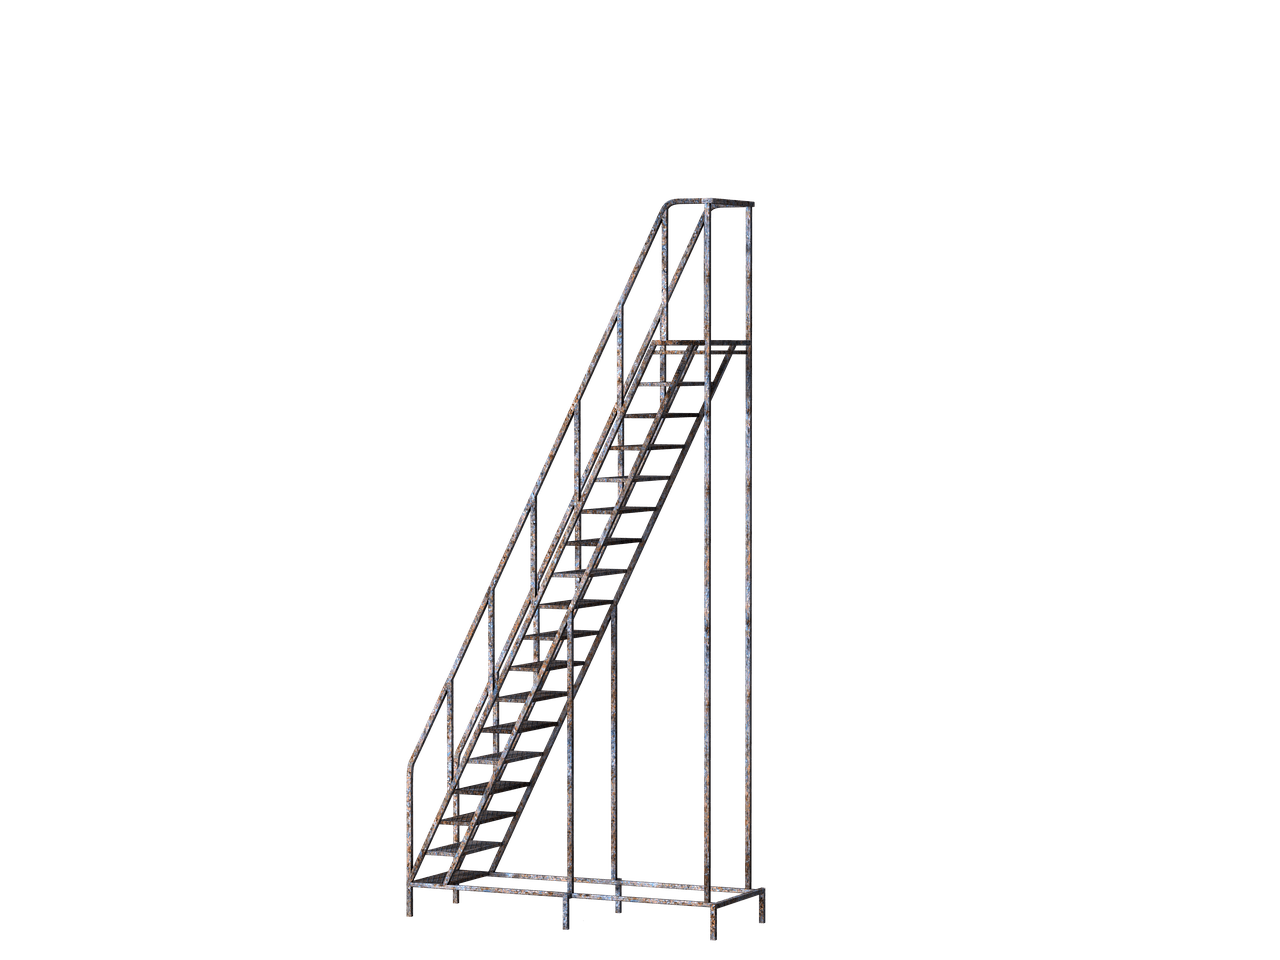 Metallic stick png. Stairs mettalic mobile left